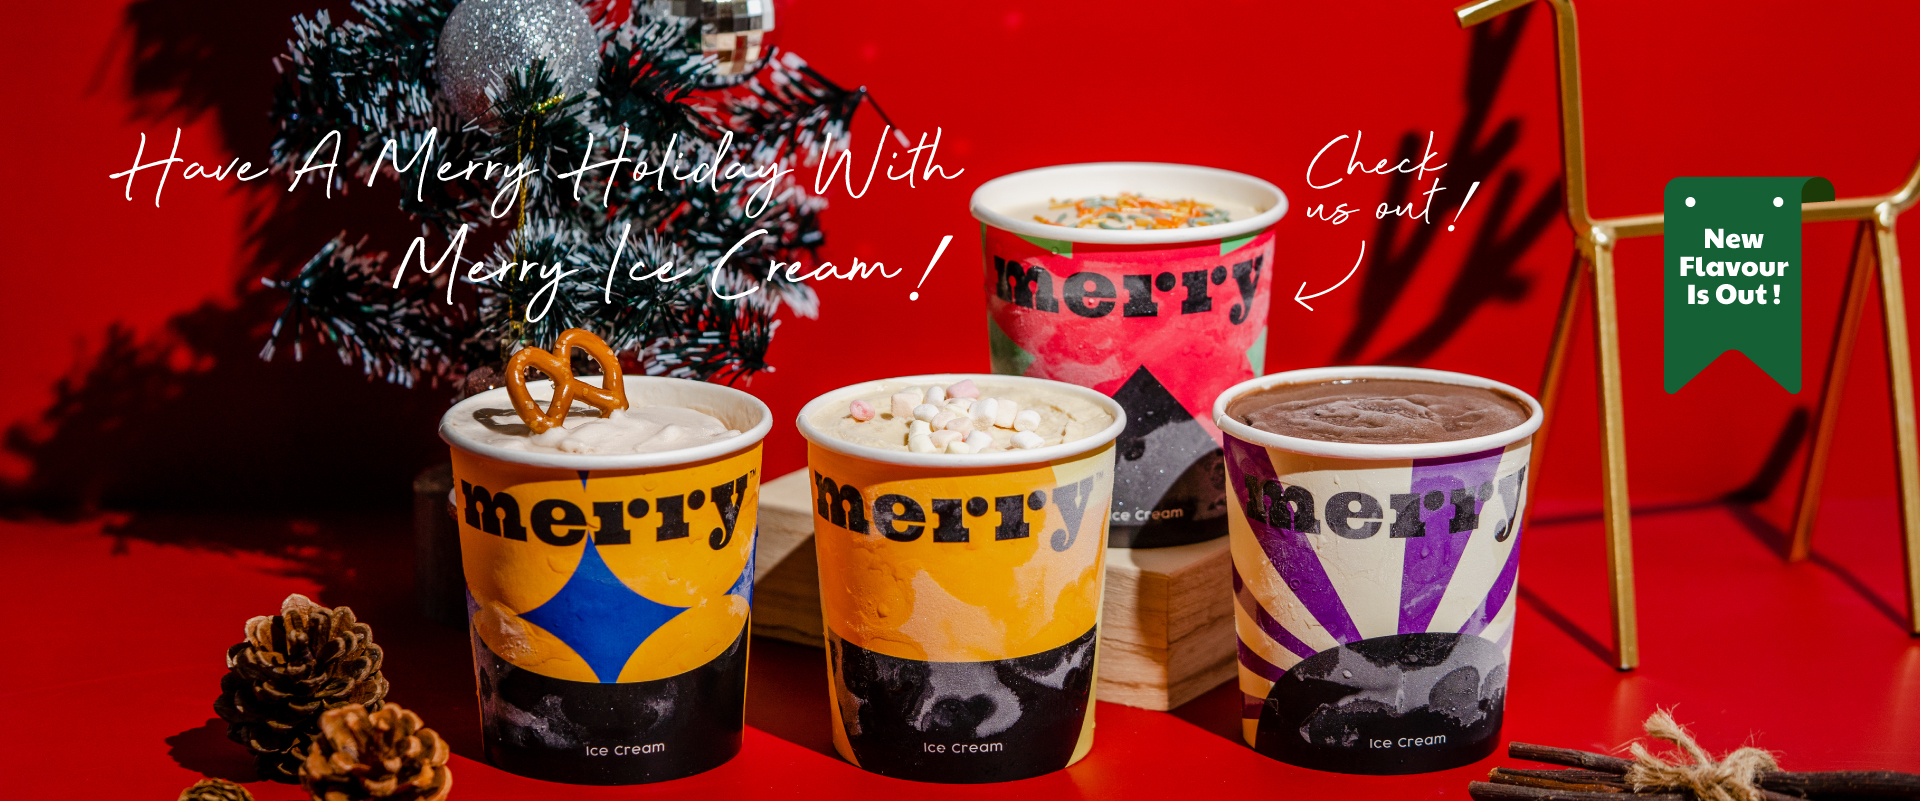 new flavour Merry Me Ice Cream Caterer, Merry Me Ice Cream, Ice Cream Supplier, Ice Cream Manufacturer, Ice Cream Cart, Celebration Event, Cooperate Event, Ice Cream OEM, Penang Ice Cream, Ice Cream Bar, Malaysia ice cream